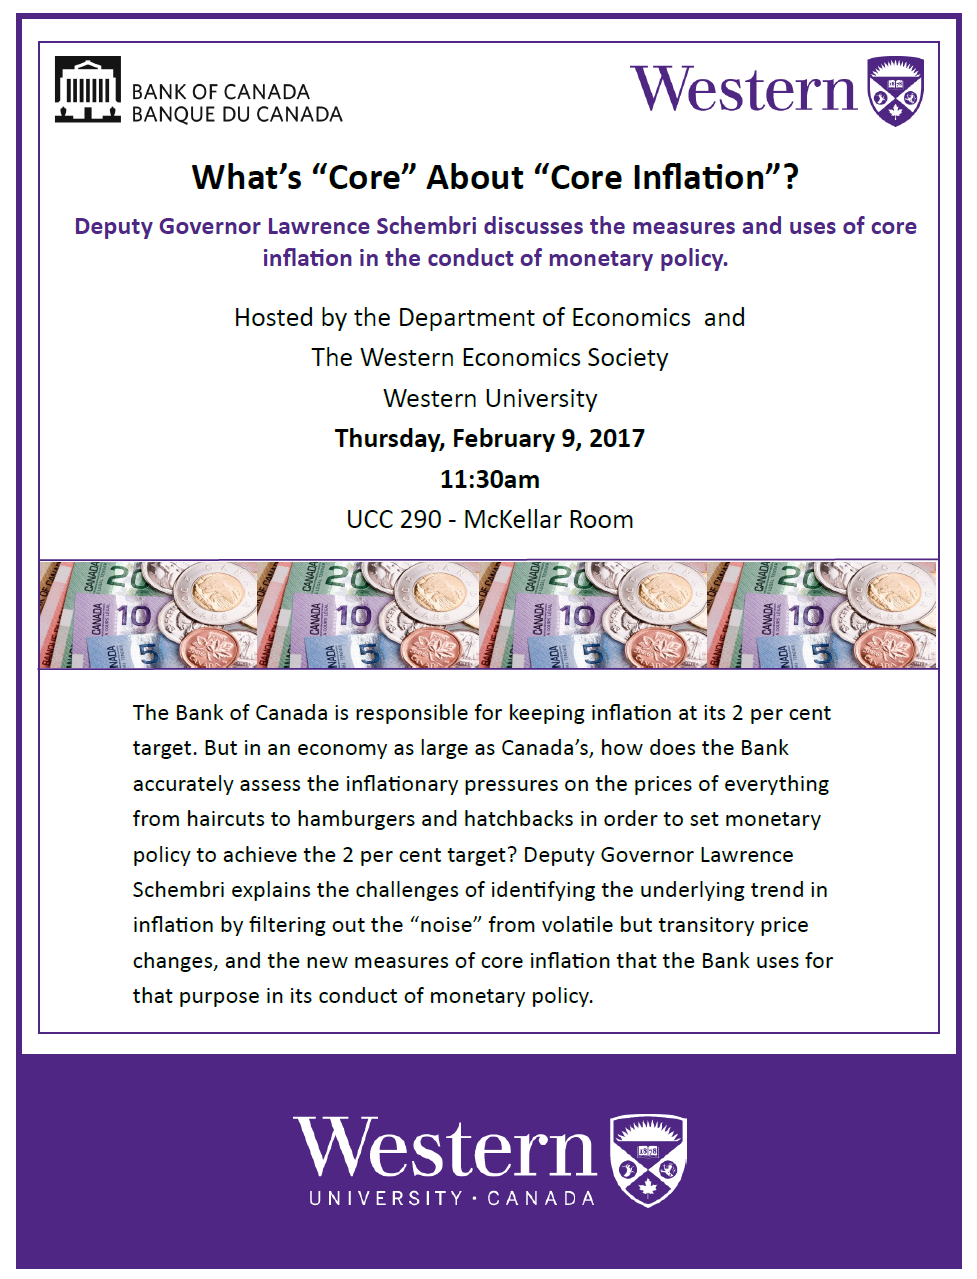 What's core about core inflation? poster